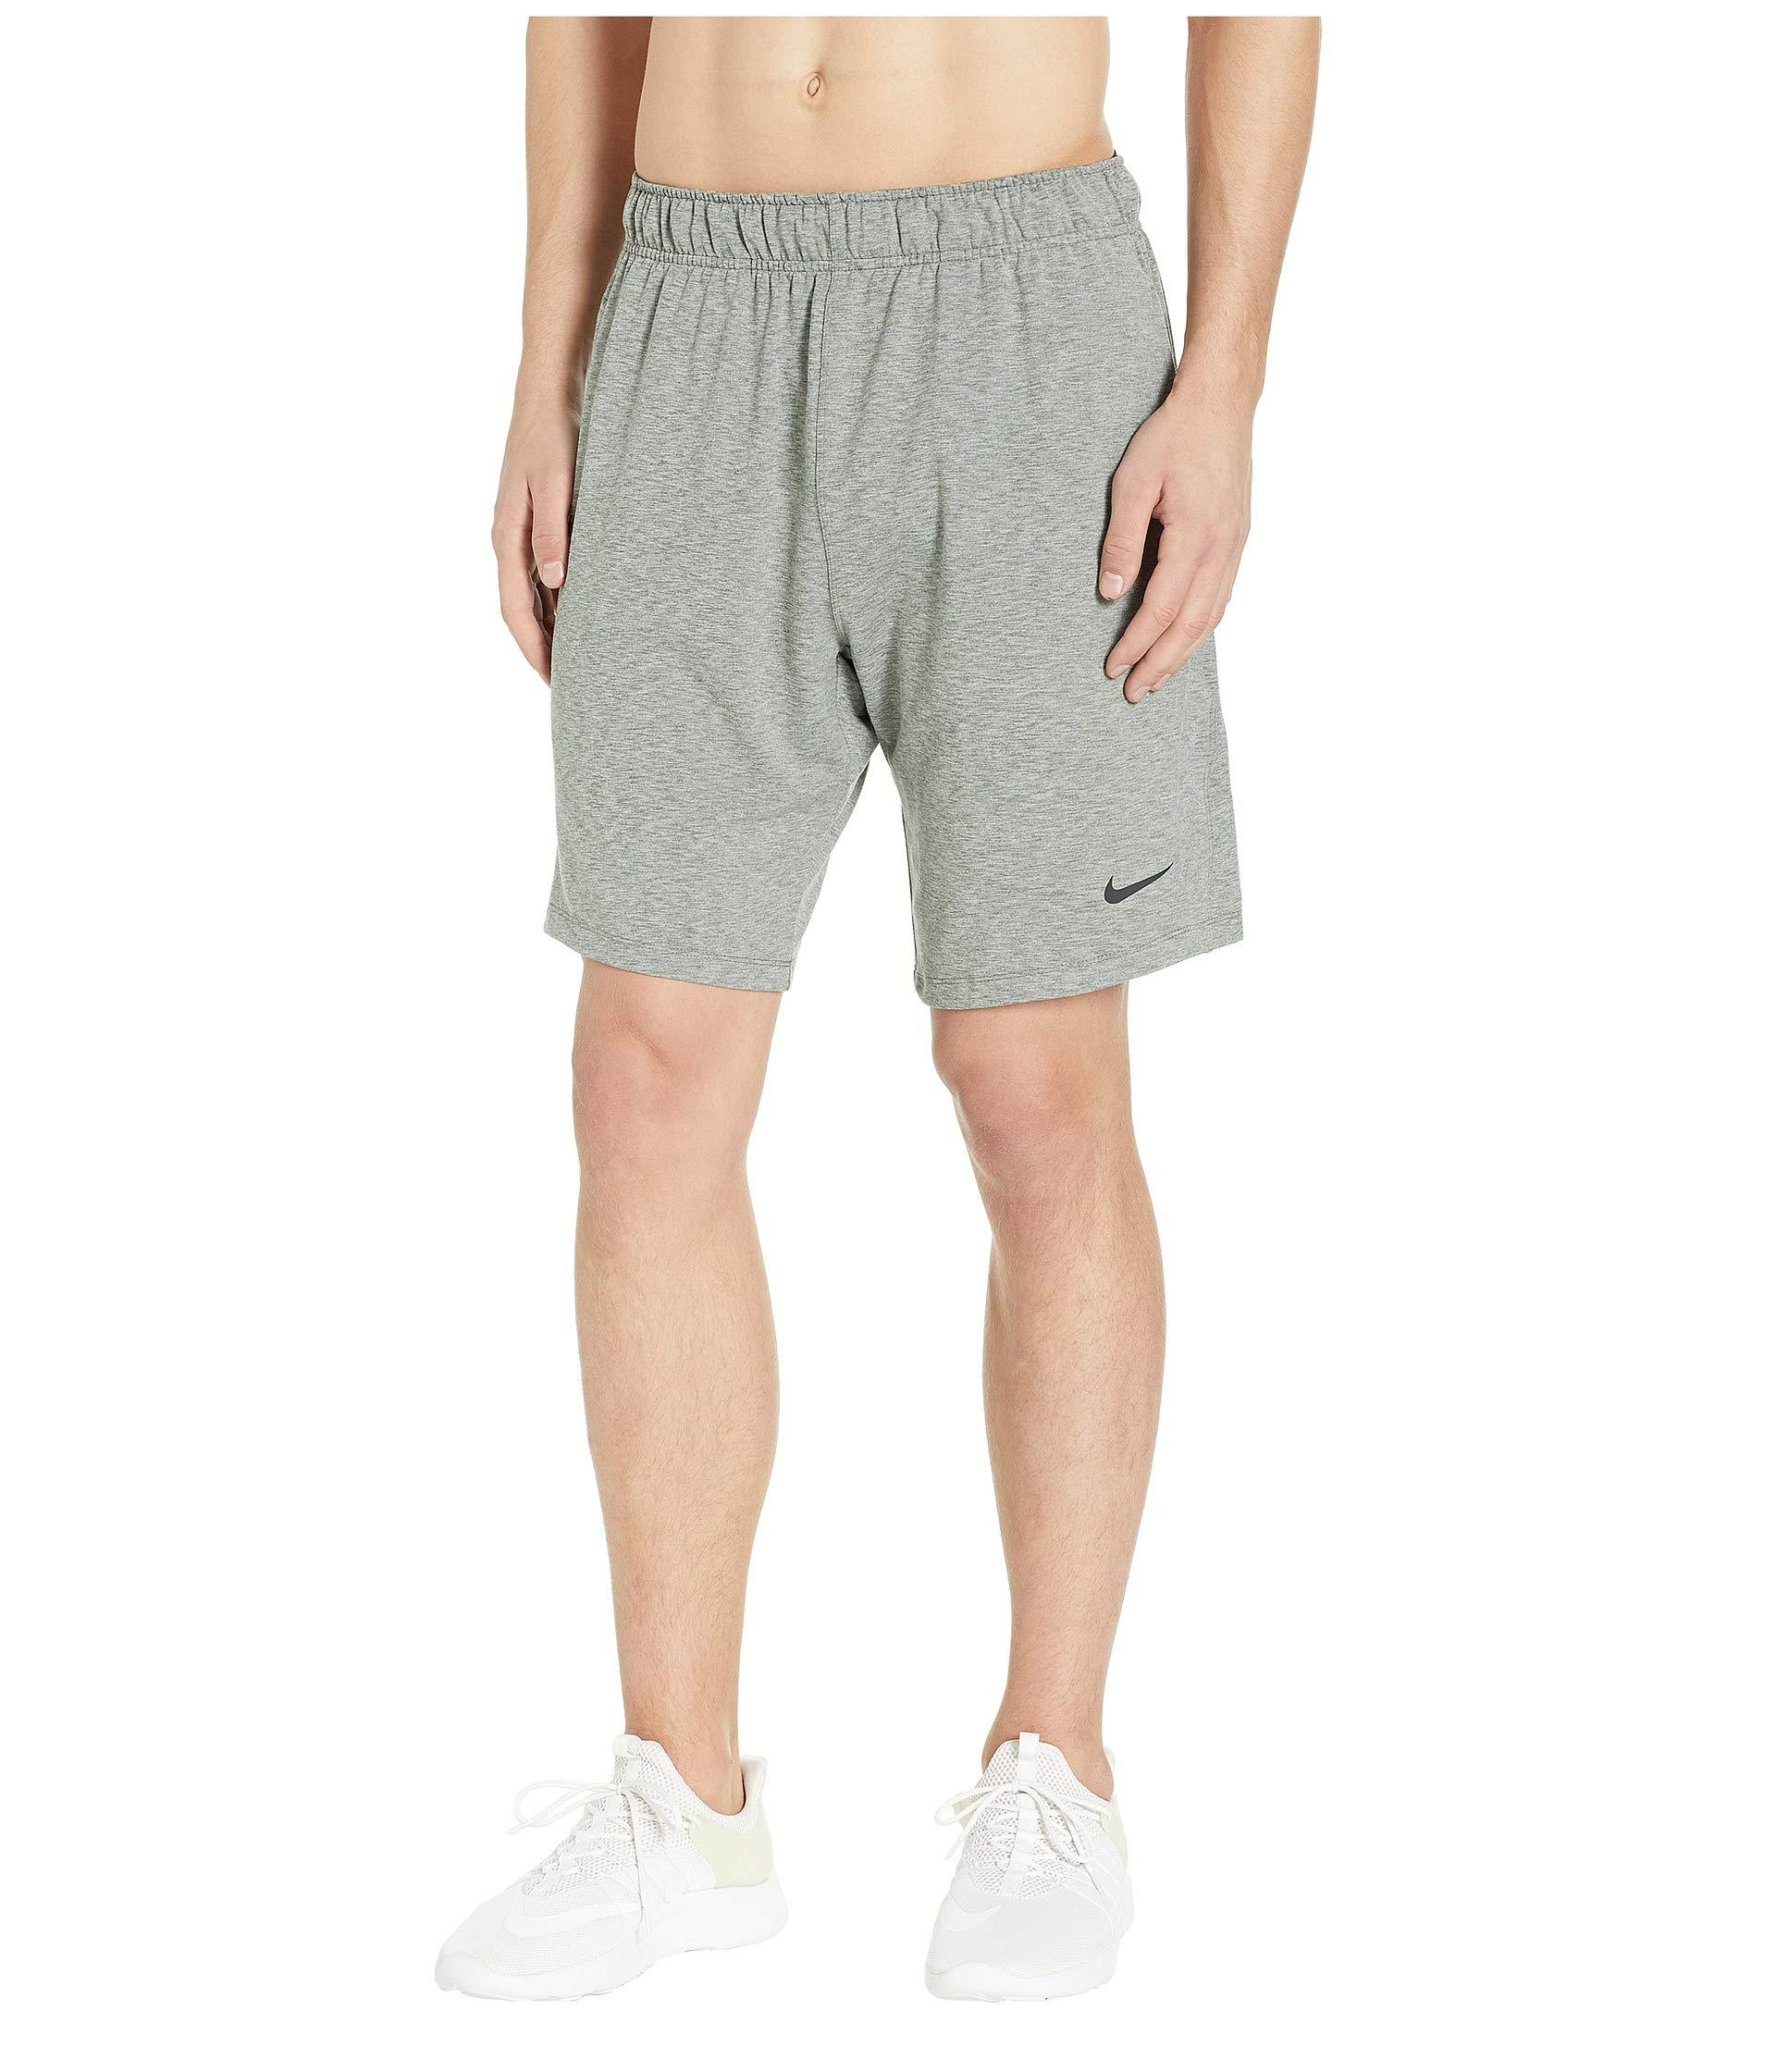 ad4e4aa9 Lyst - Nike Dry Shorts Hyperdry Transcend Lt in Gray for Men